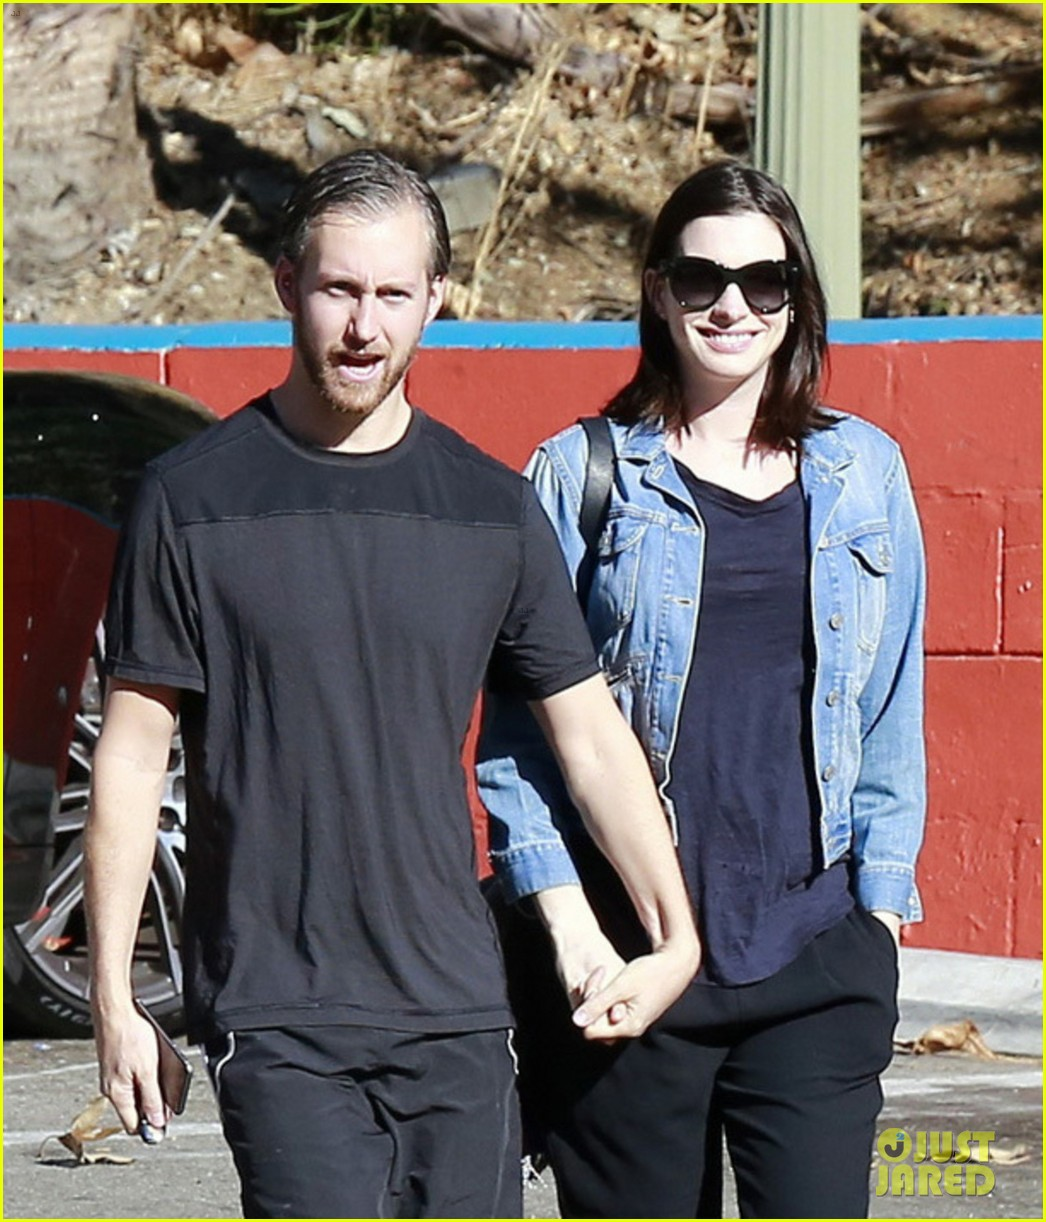 Anne Hathaway Steps Out After Pregnancy News Revealed